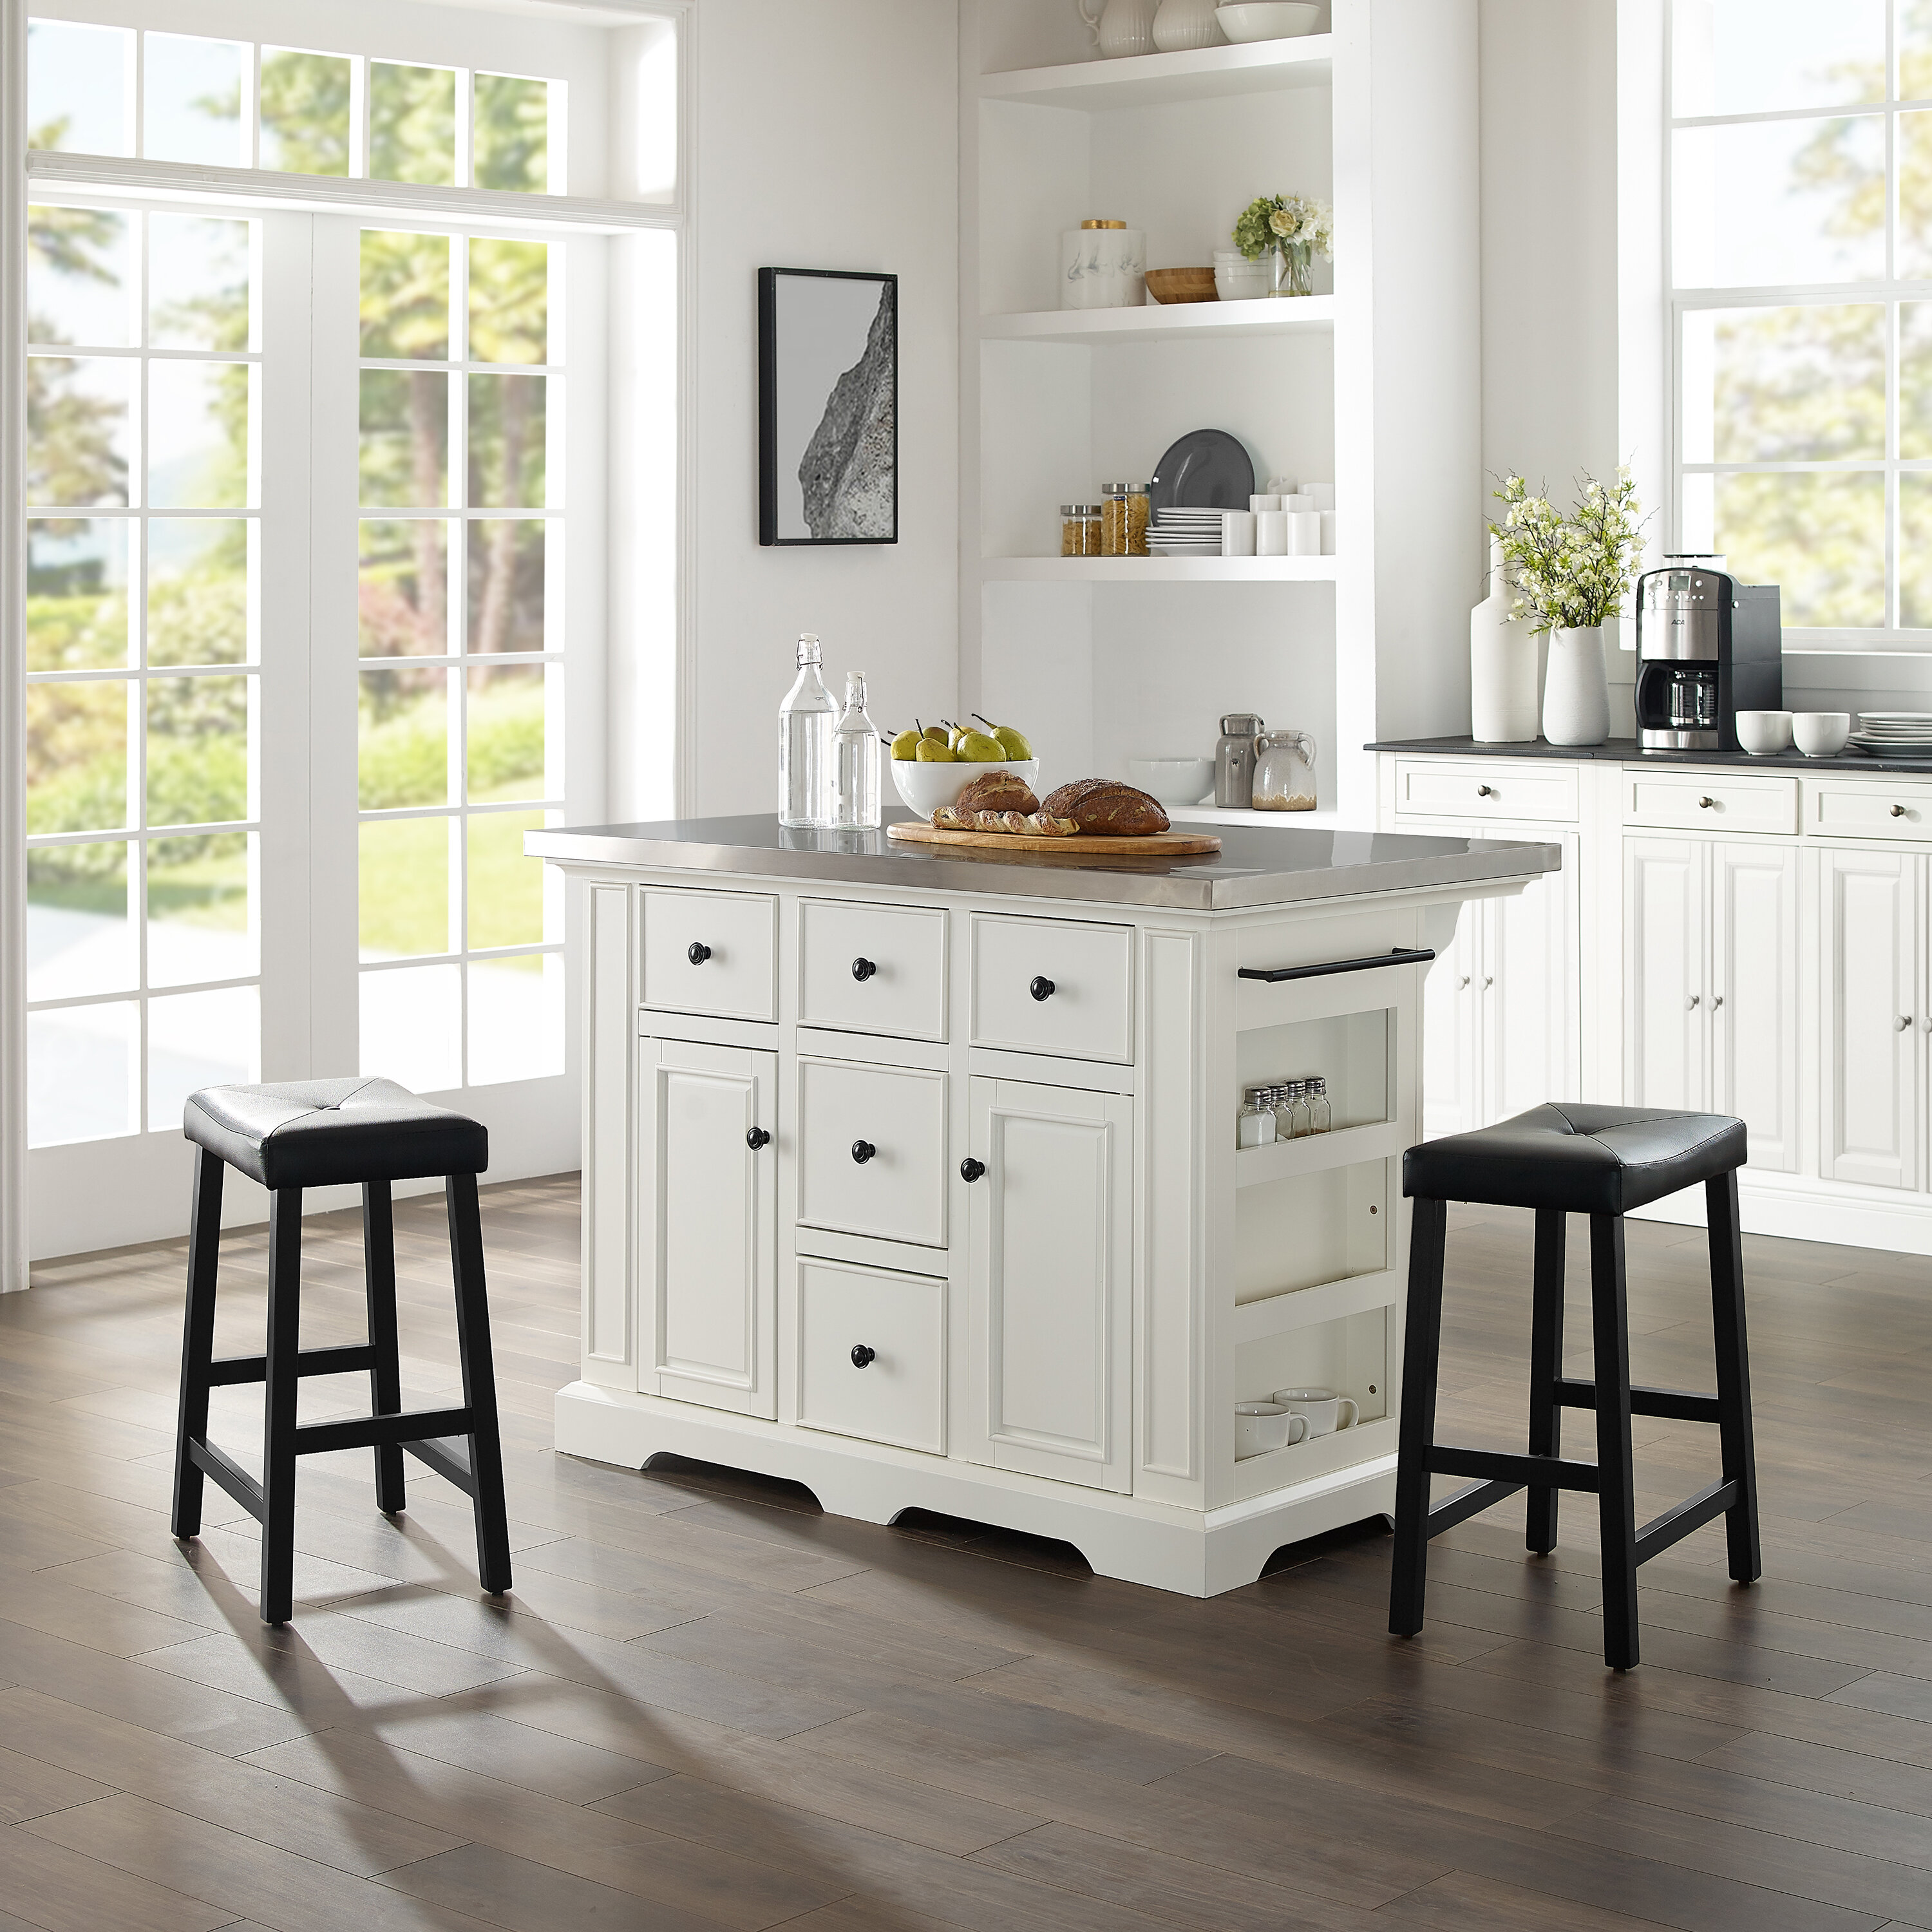 Gael Kitchen Island Set with Stainless Steel